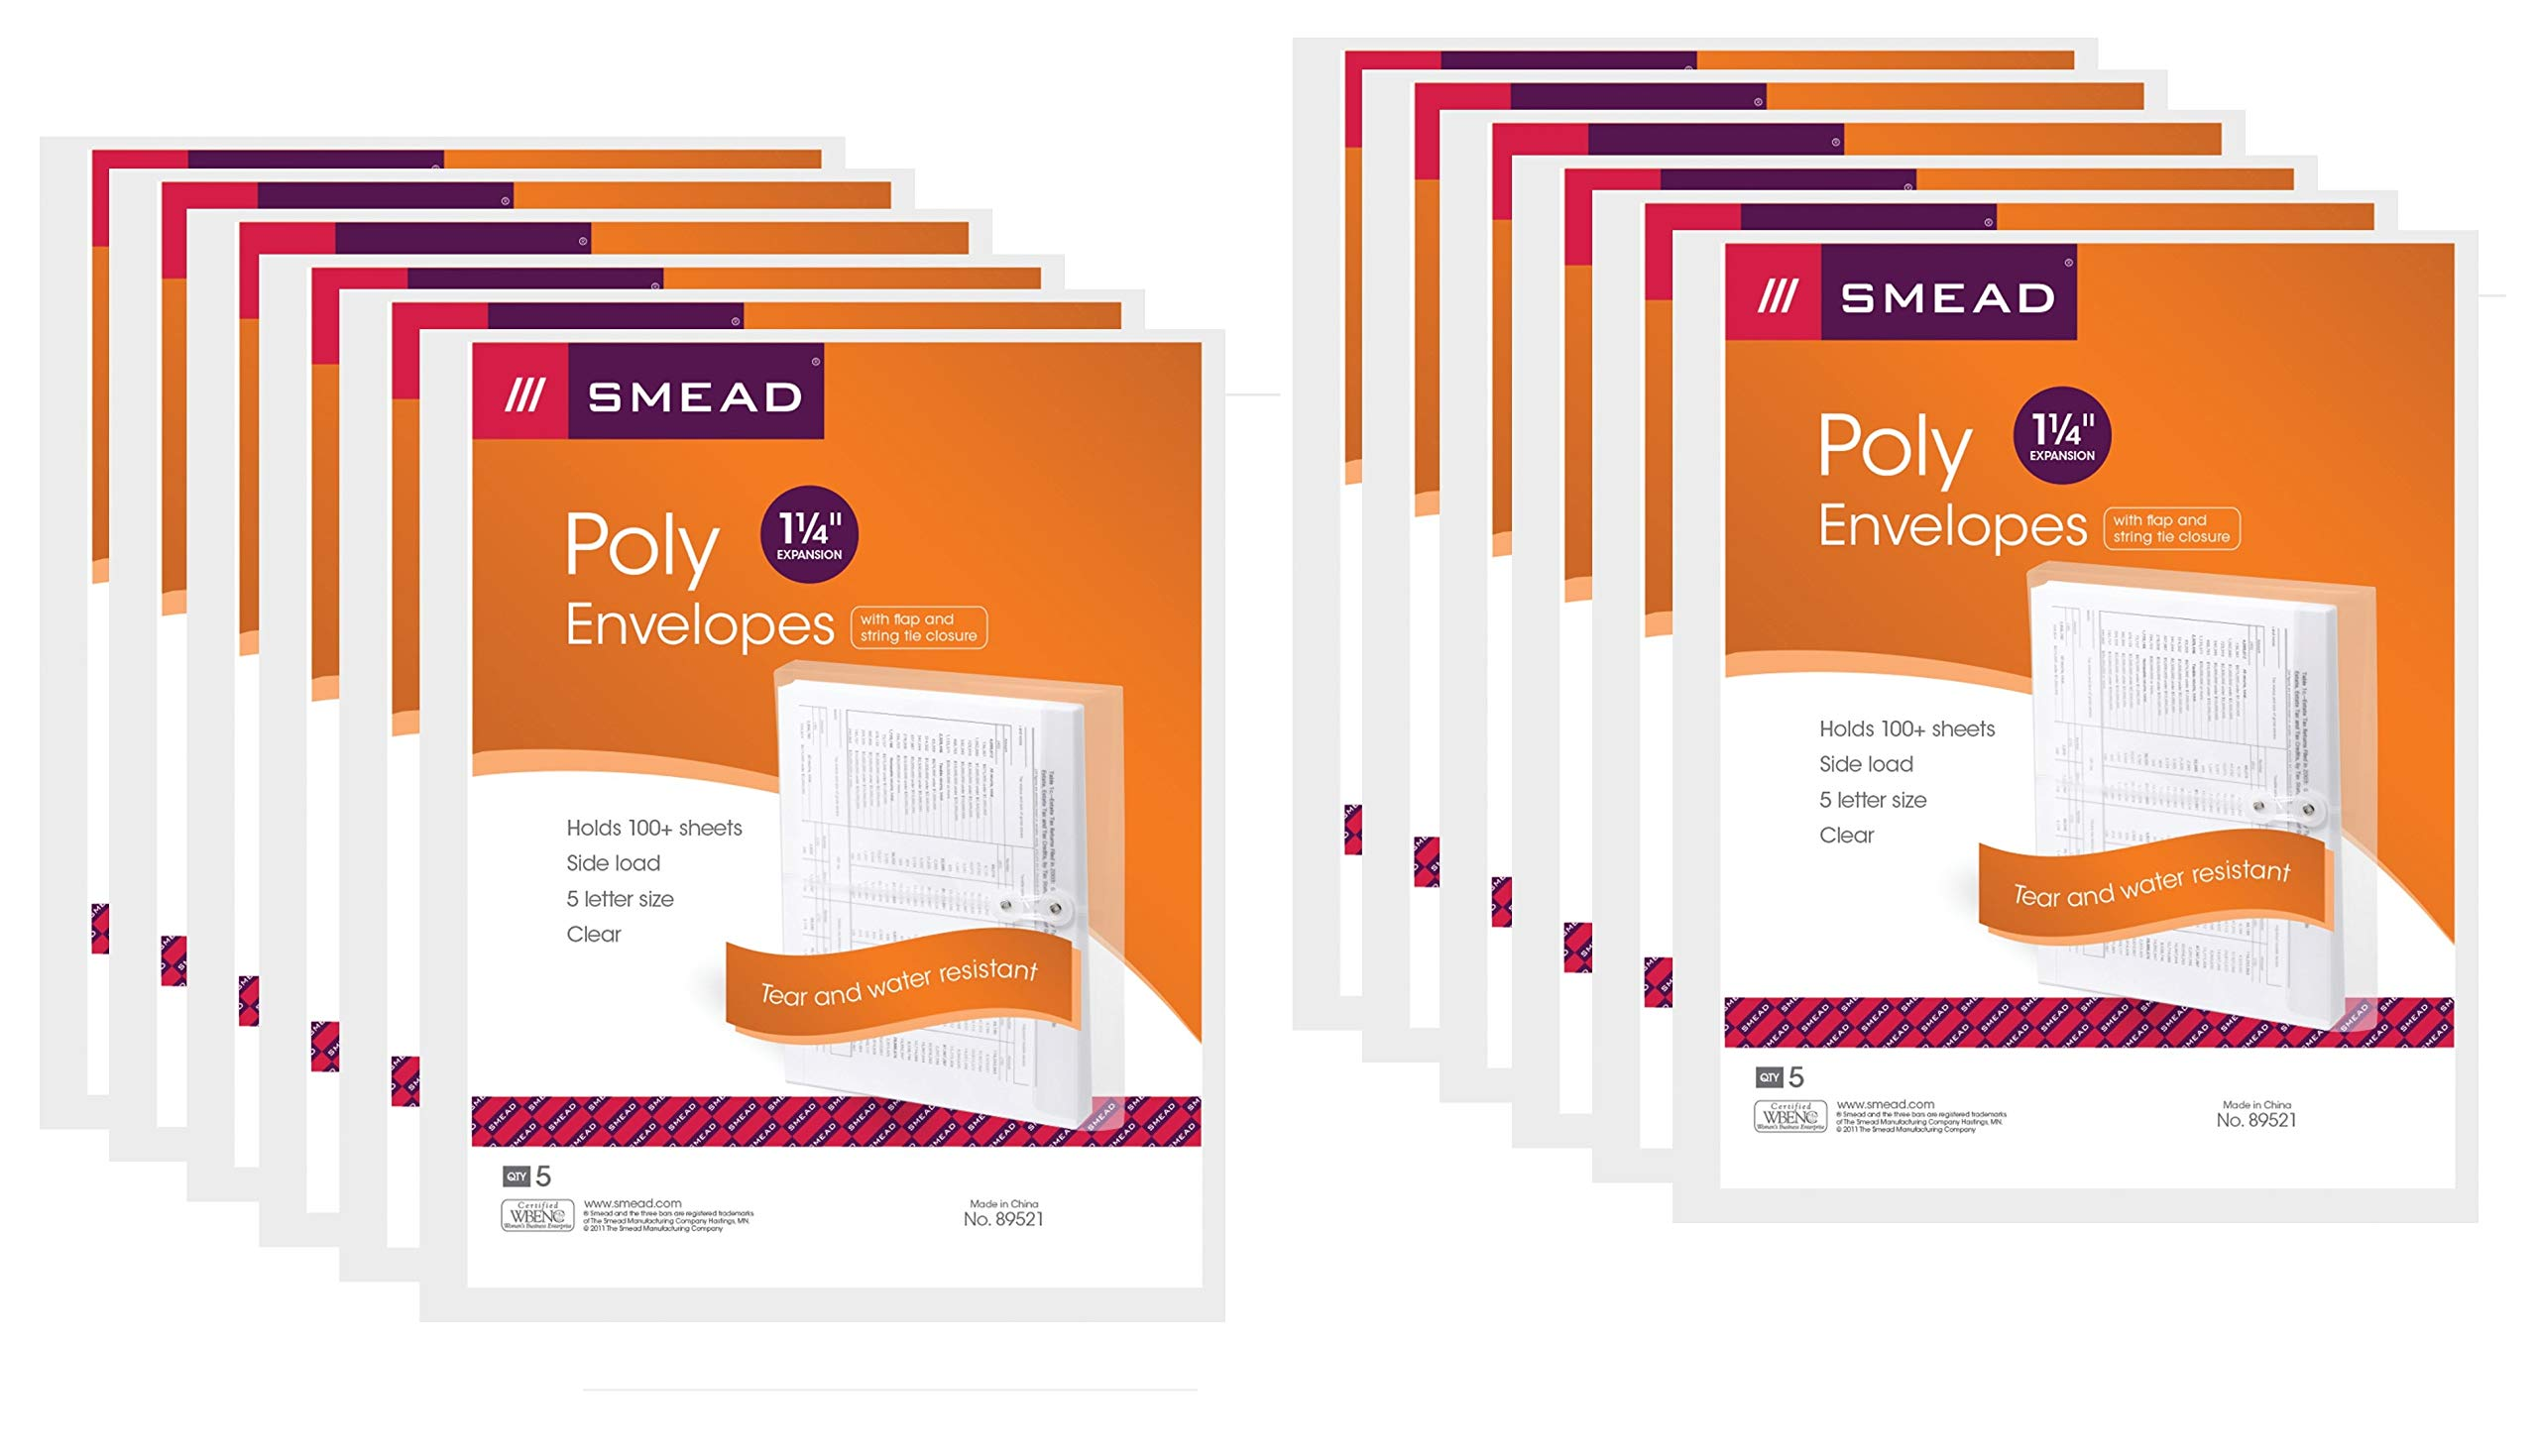 Smead Poly Envelope, 1-1/4'' Expansion, String-Tie Closure, Side Load, Letter Size, Clear, 5 per Pack, 12 Pack, 60 Envelopes Total (89521) by Smead